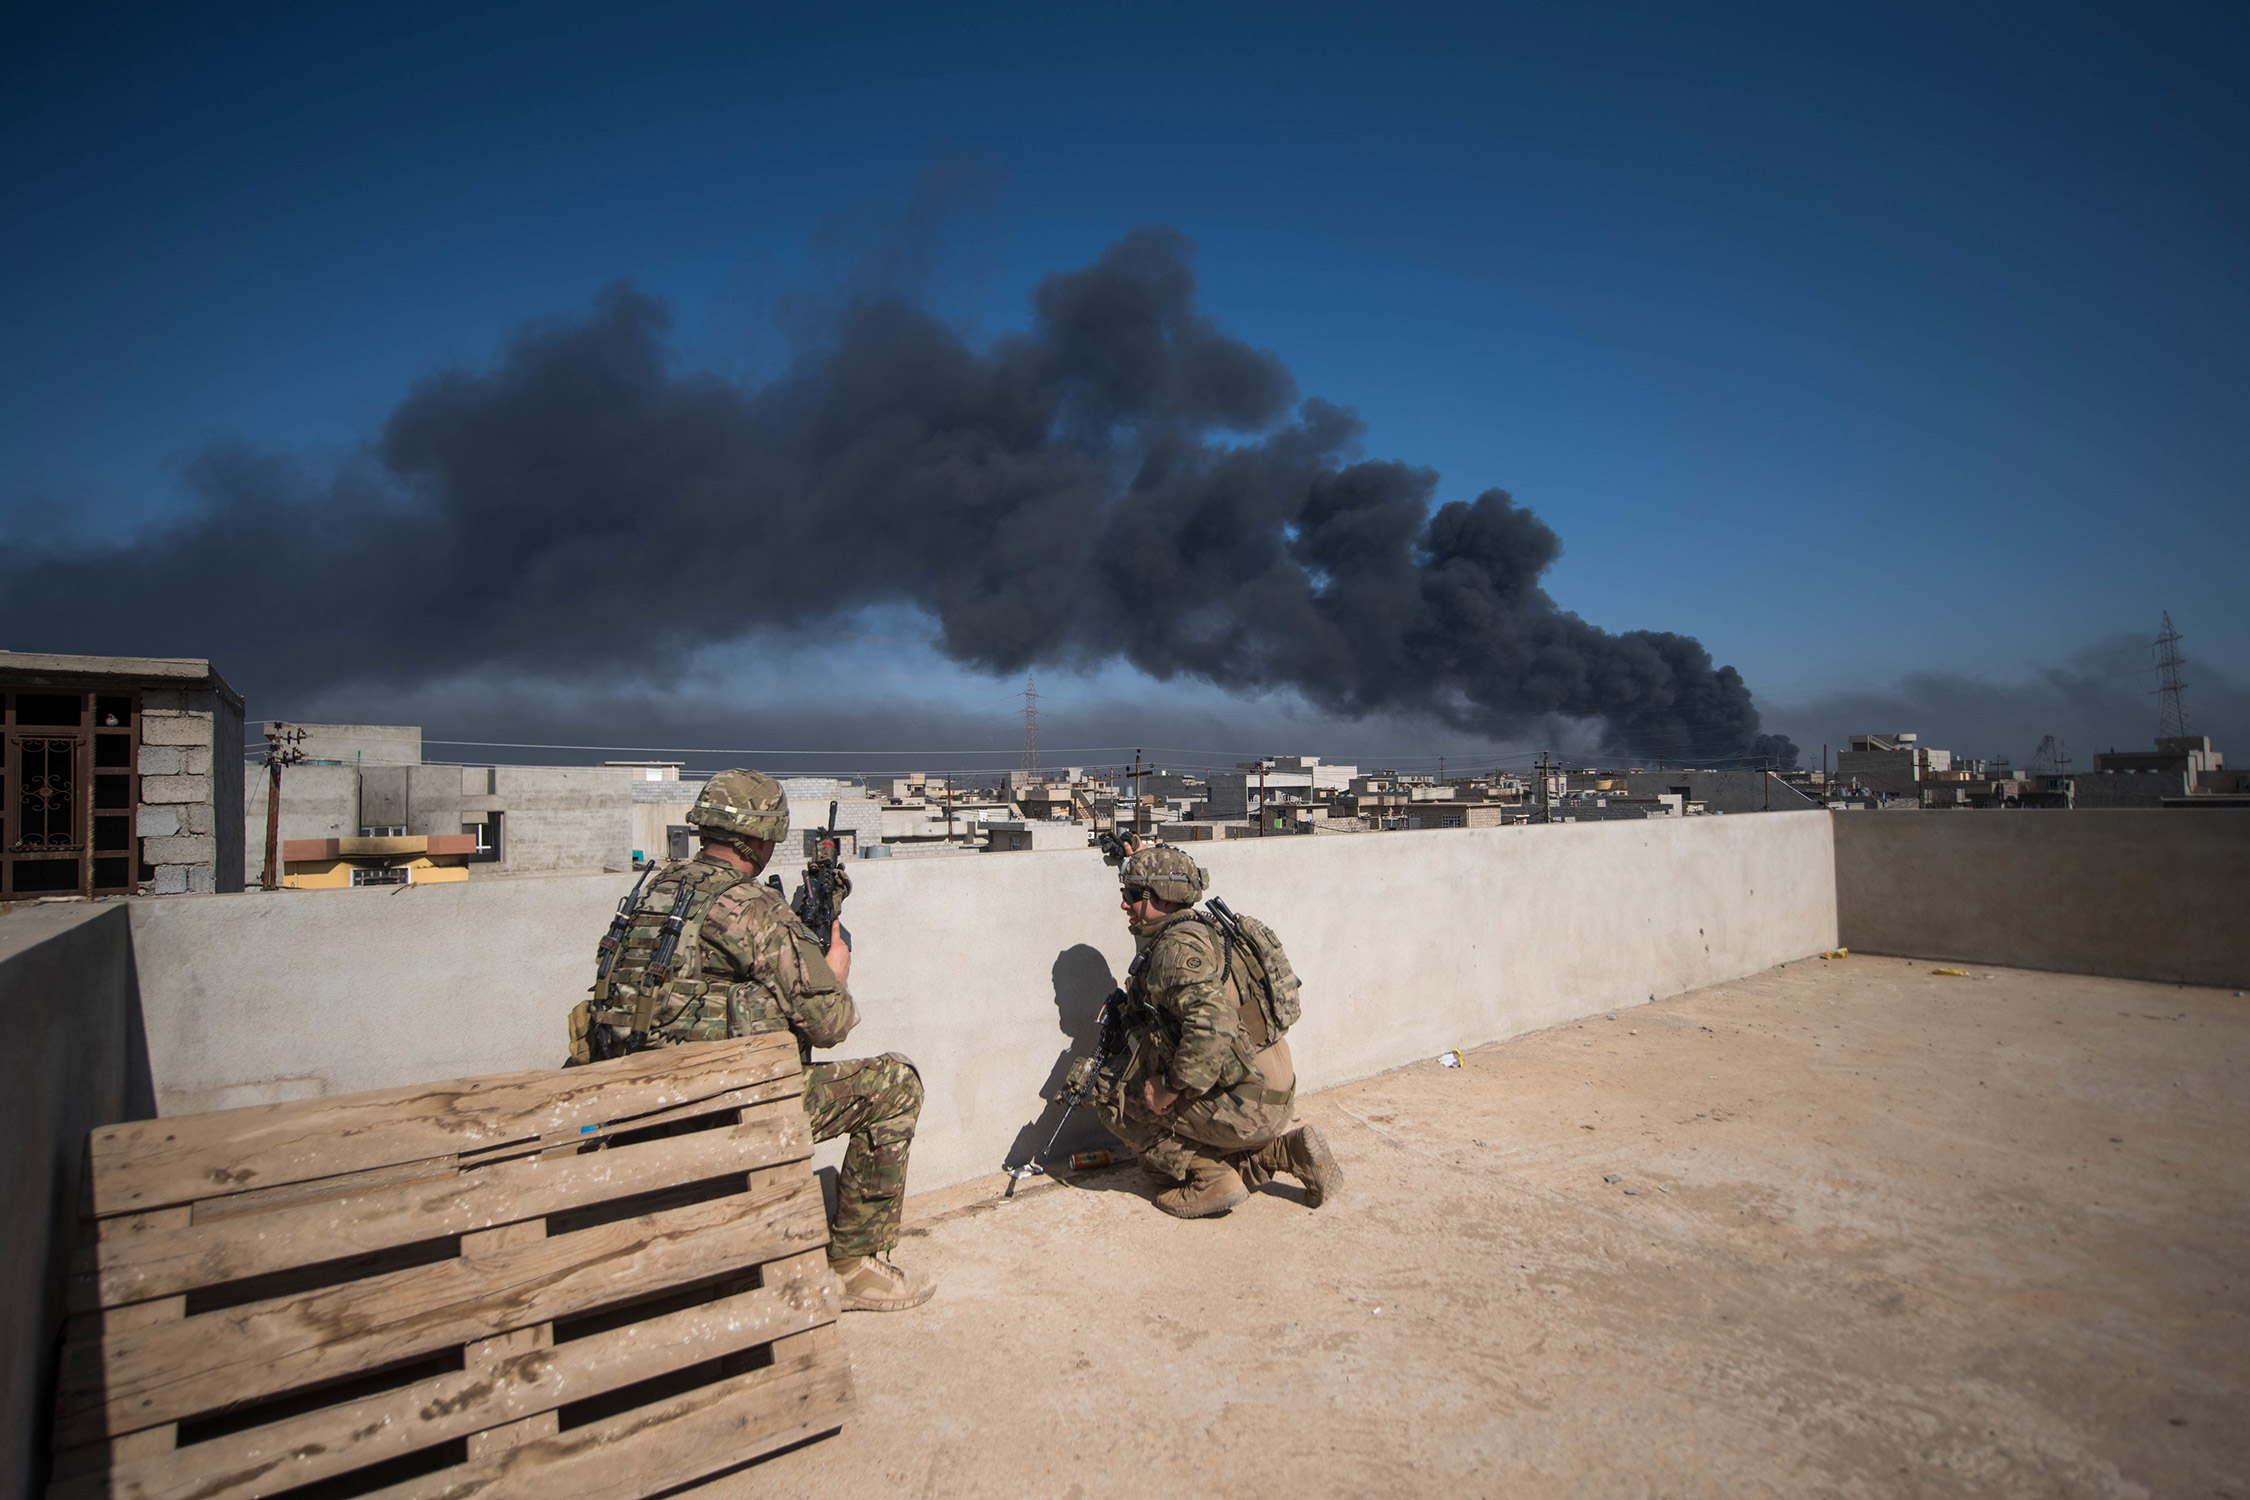 US Army soldiers in Mosul Iraq